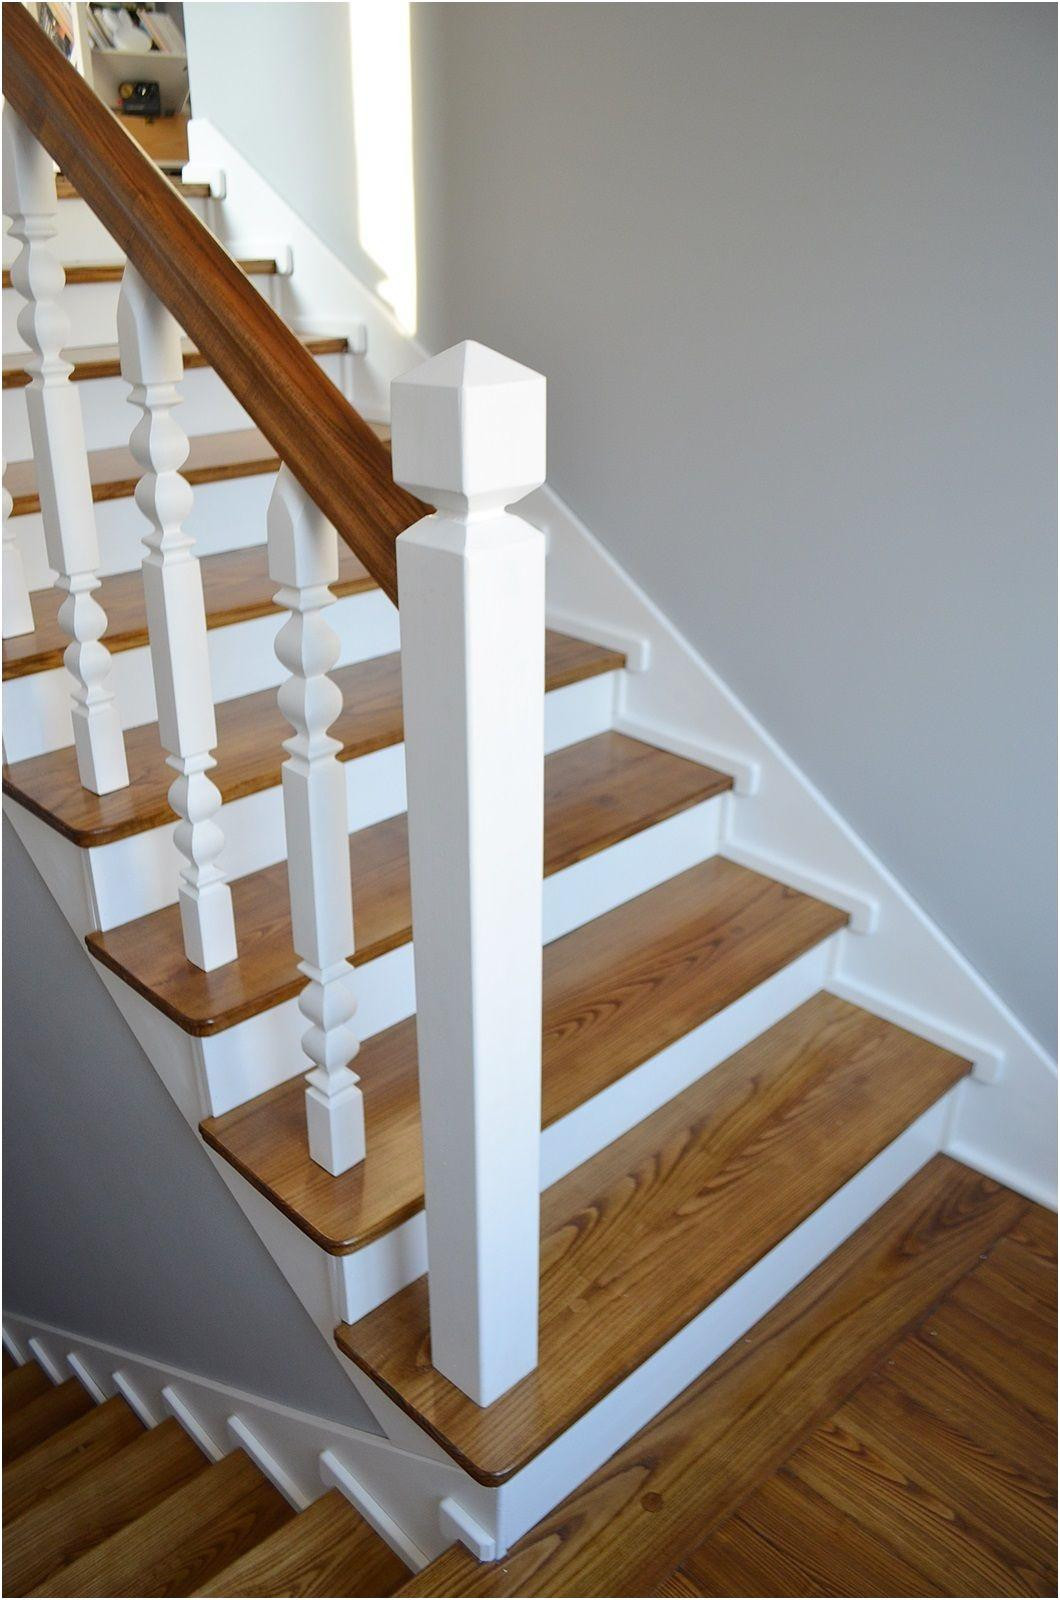 how to fix squeaky hardwood floors of new of diy stair railing ideas stock artsvisuelscaribeens com intended for how to install hardwood flooring around railings images od inspiracji do realizacji diy jak odnowia